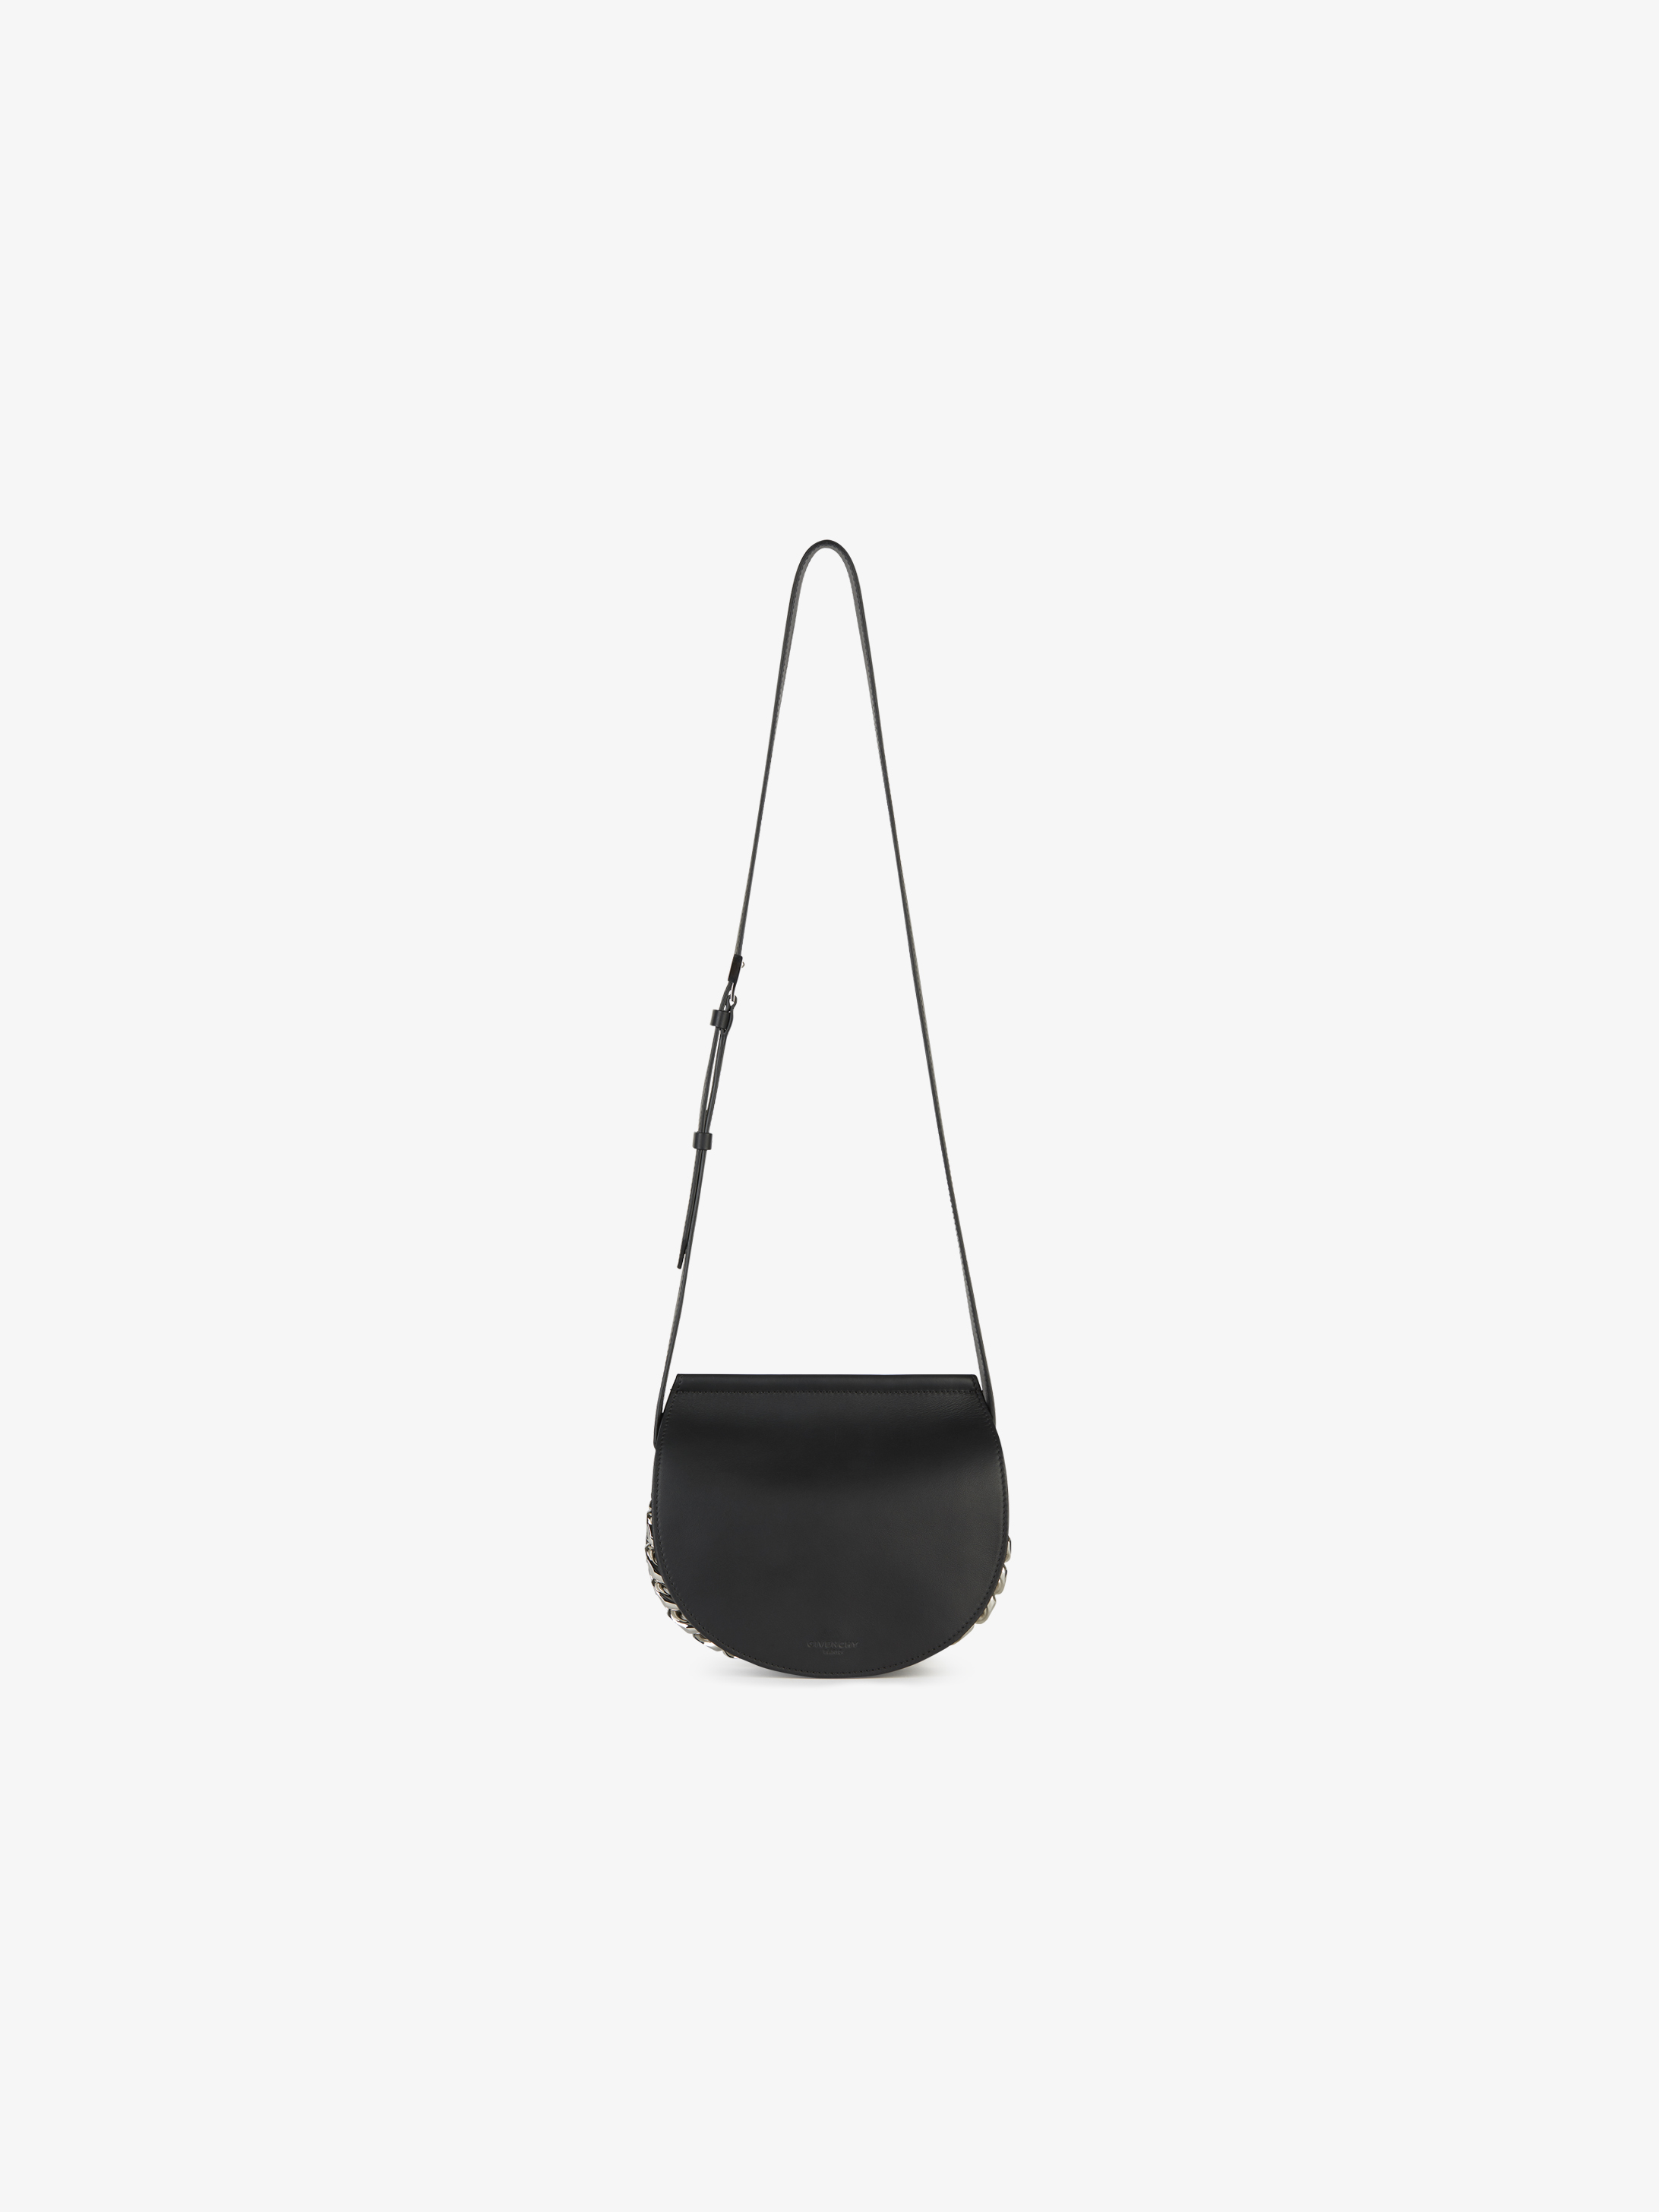 Infinity mini saddle bag